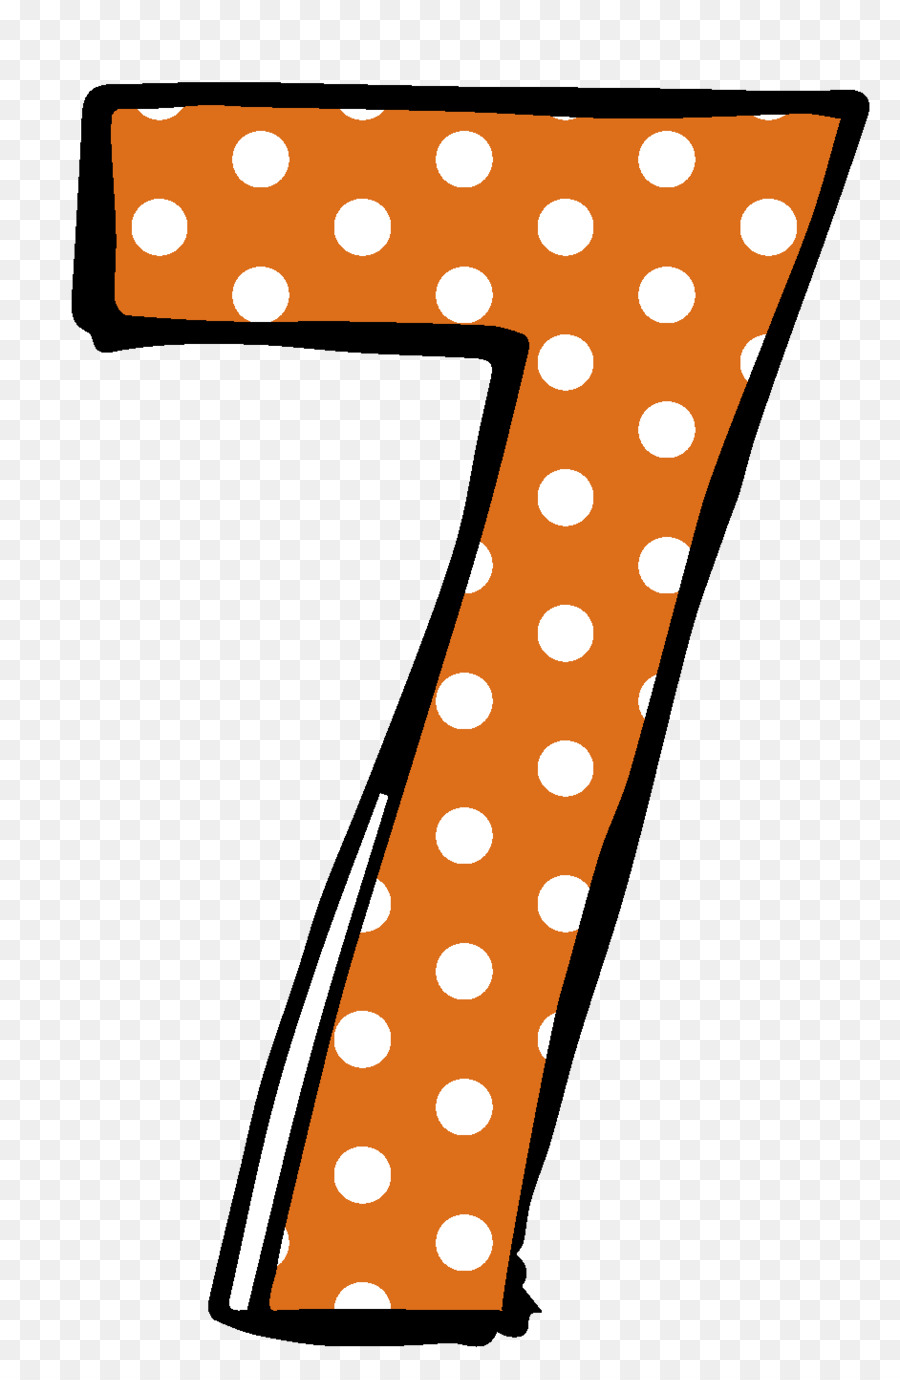 Number free content clip. 1 clipart cute